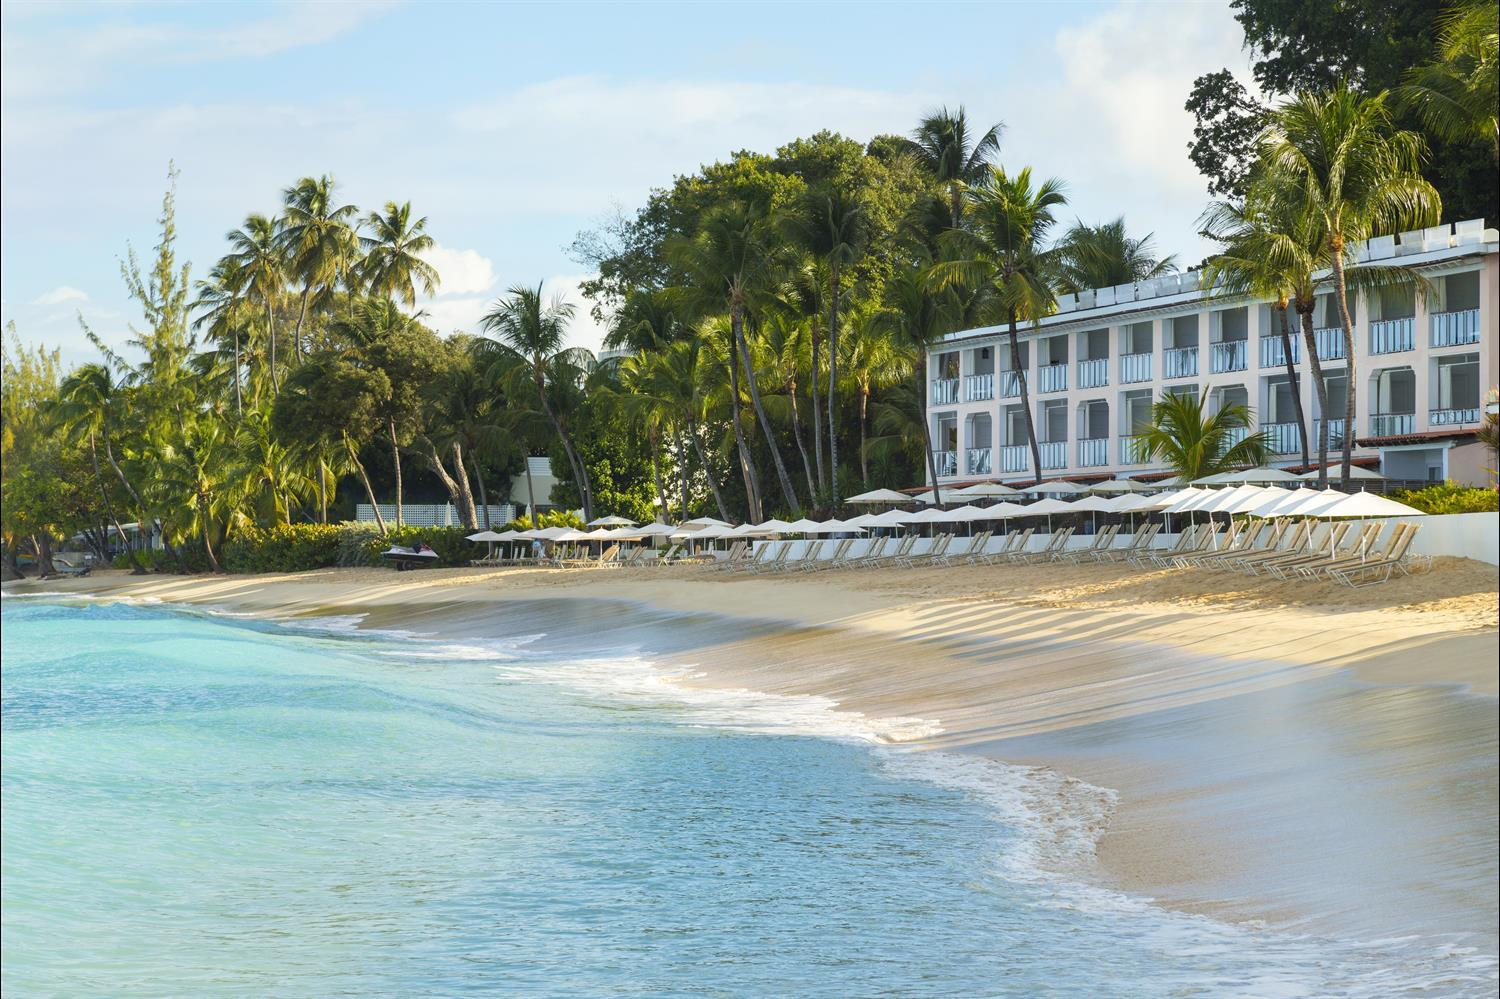 Escape to Barbados & The Fairmont Royal Pavilion